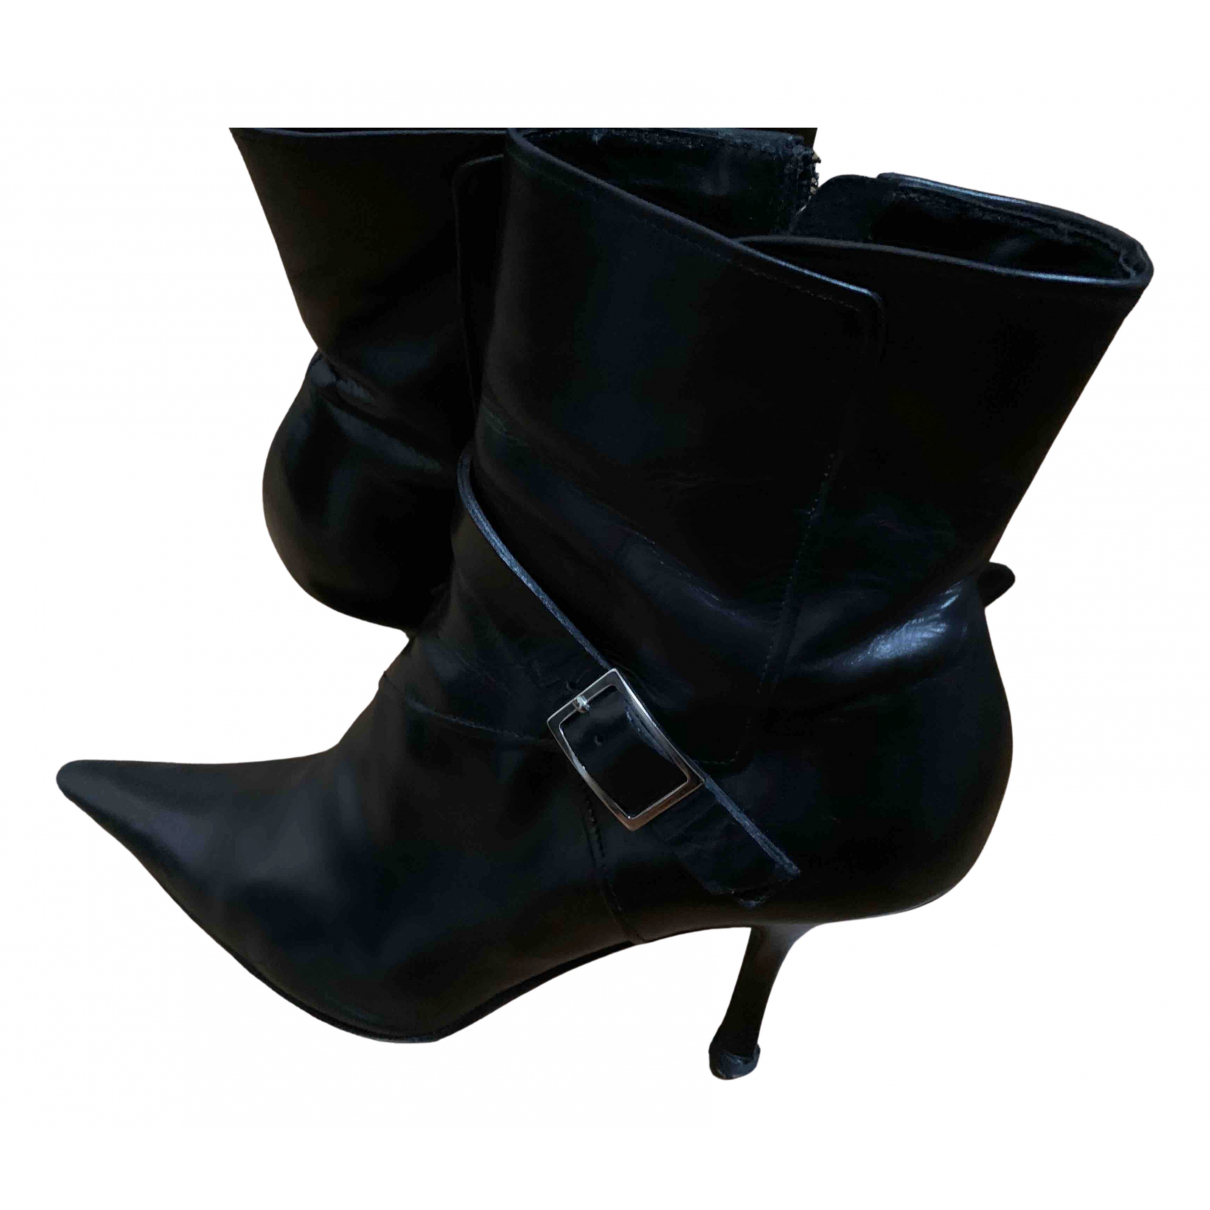 Michel Perry N Black Leather Ankle boots for Women 38 EU